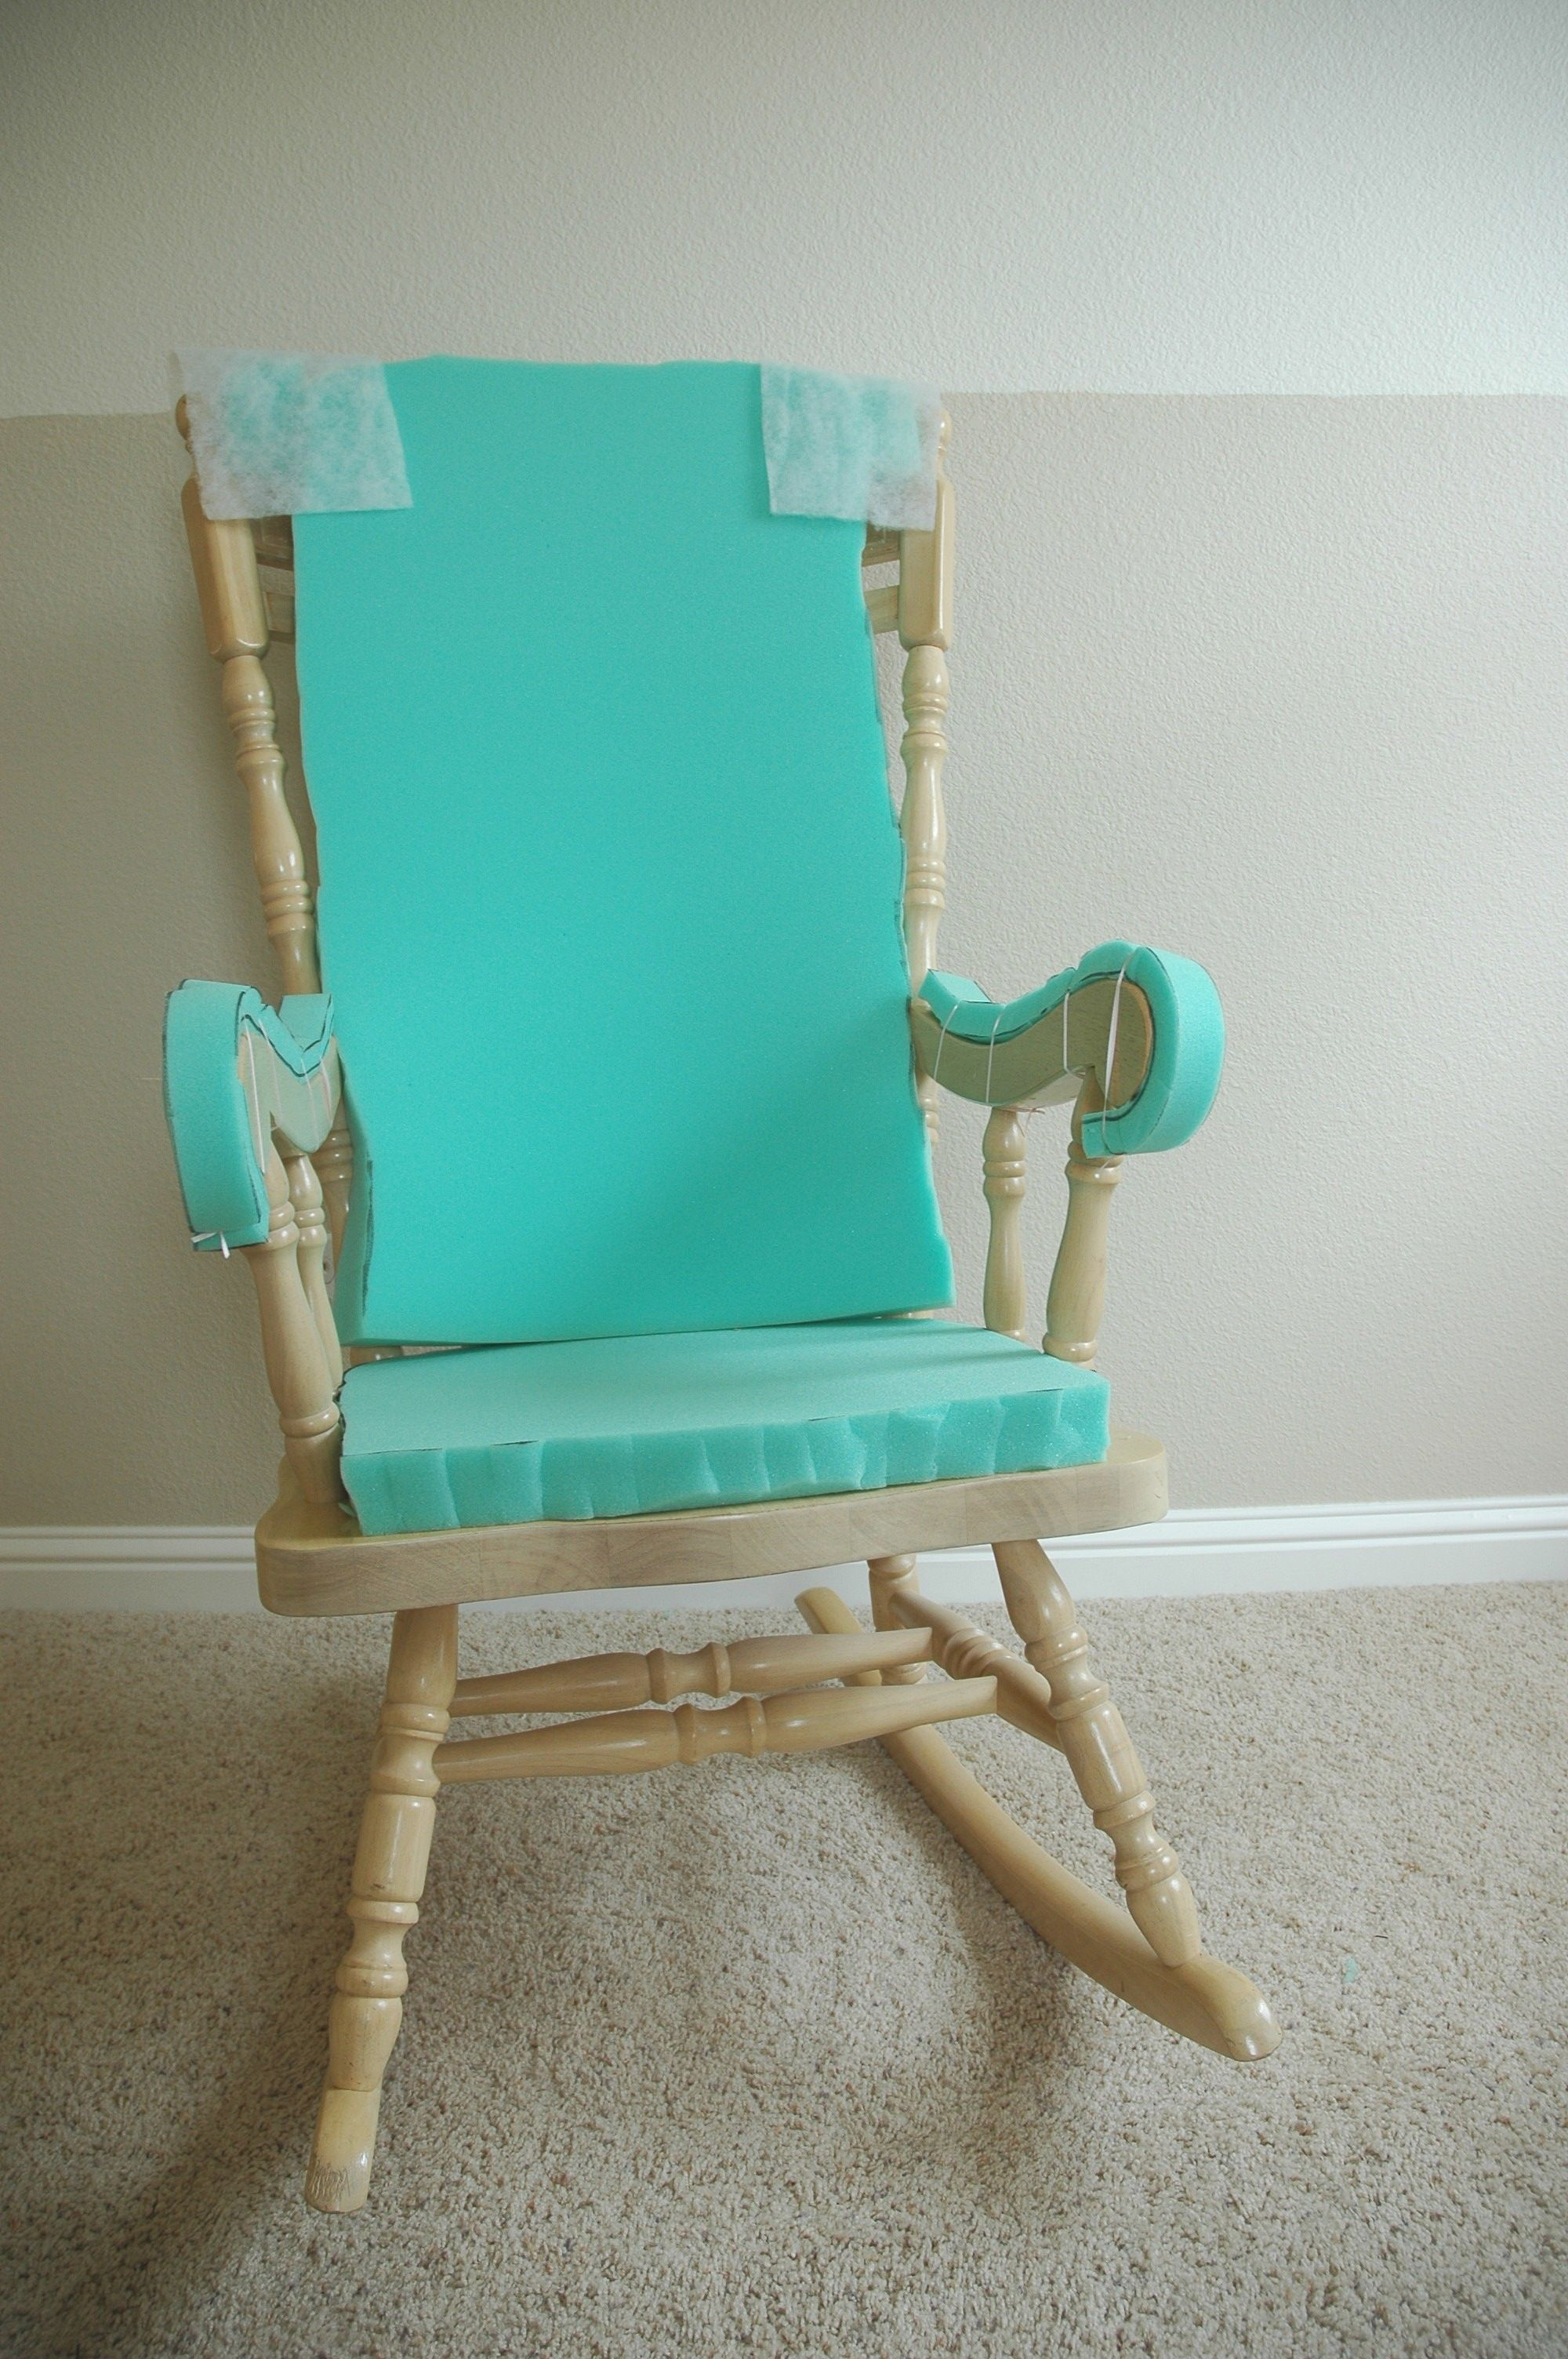 Cushions chair pads and more - Adding Comfort To A Wooden Rocking Chair Part One